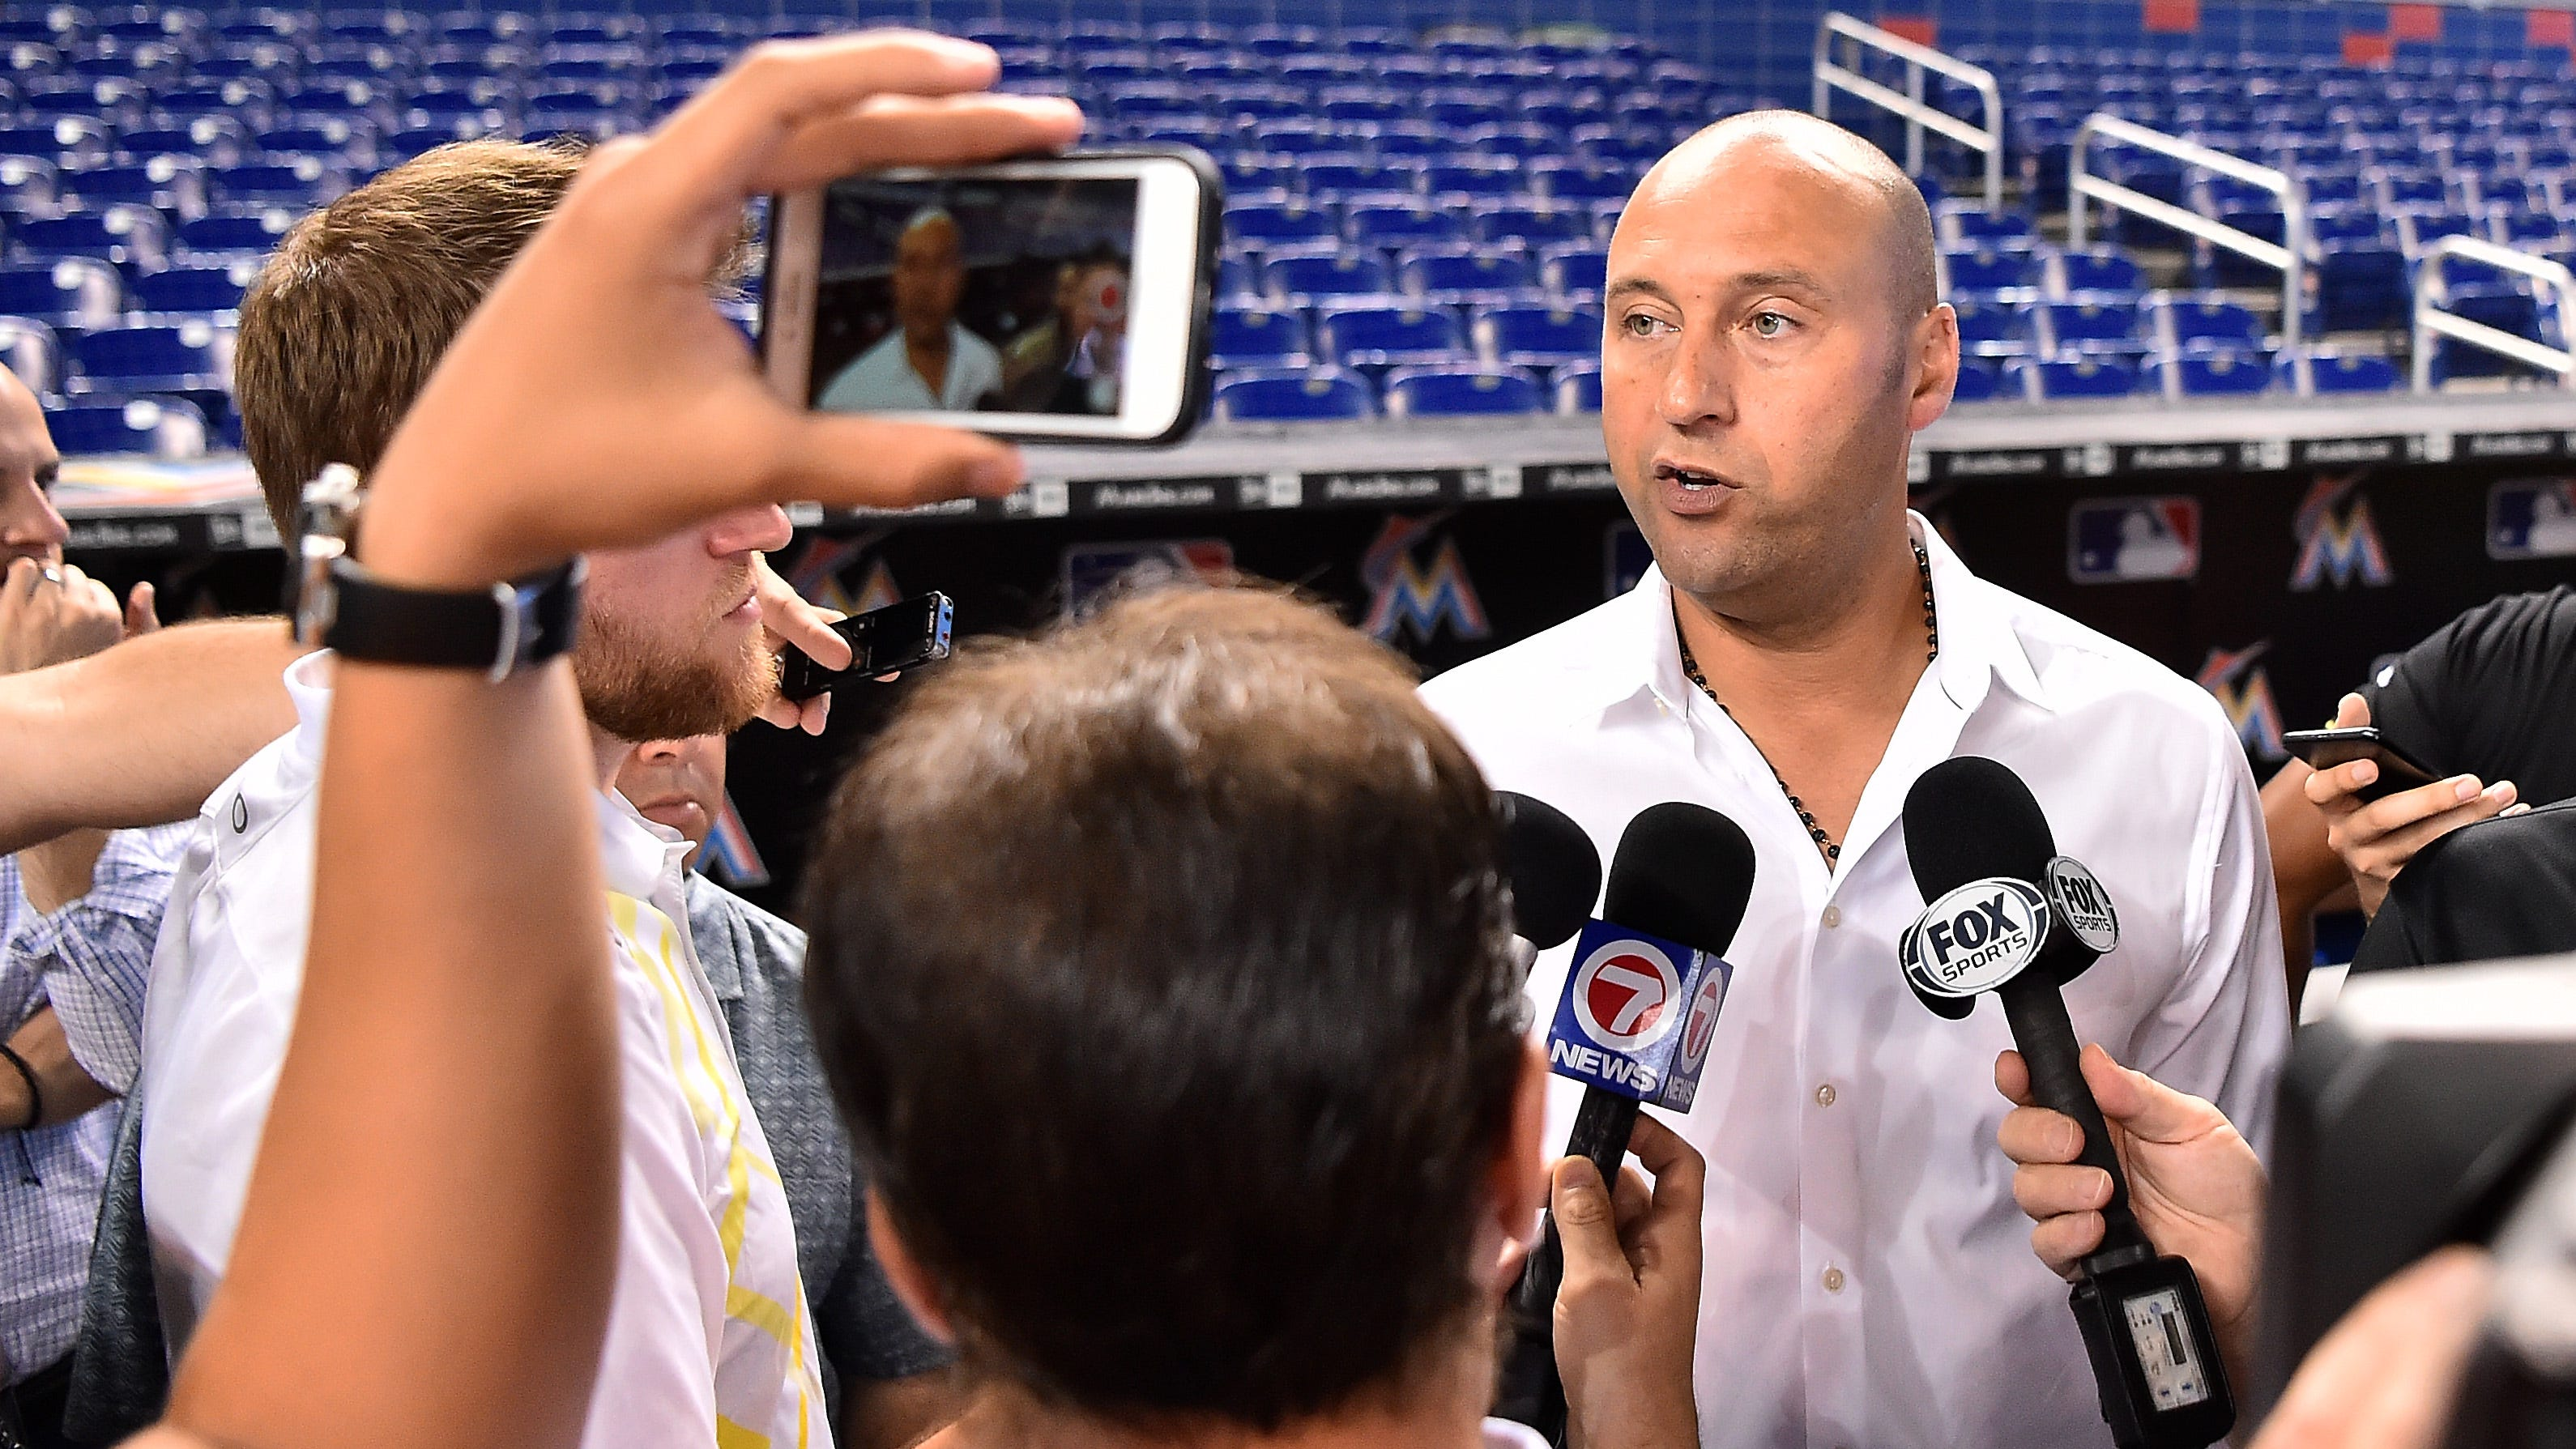 Marlins chief executive officer Derek Jeter speaks to the media prior to a June 27 game against the Arizona Diamondbacks at Marlins Park.